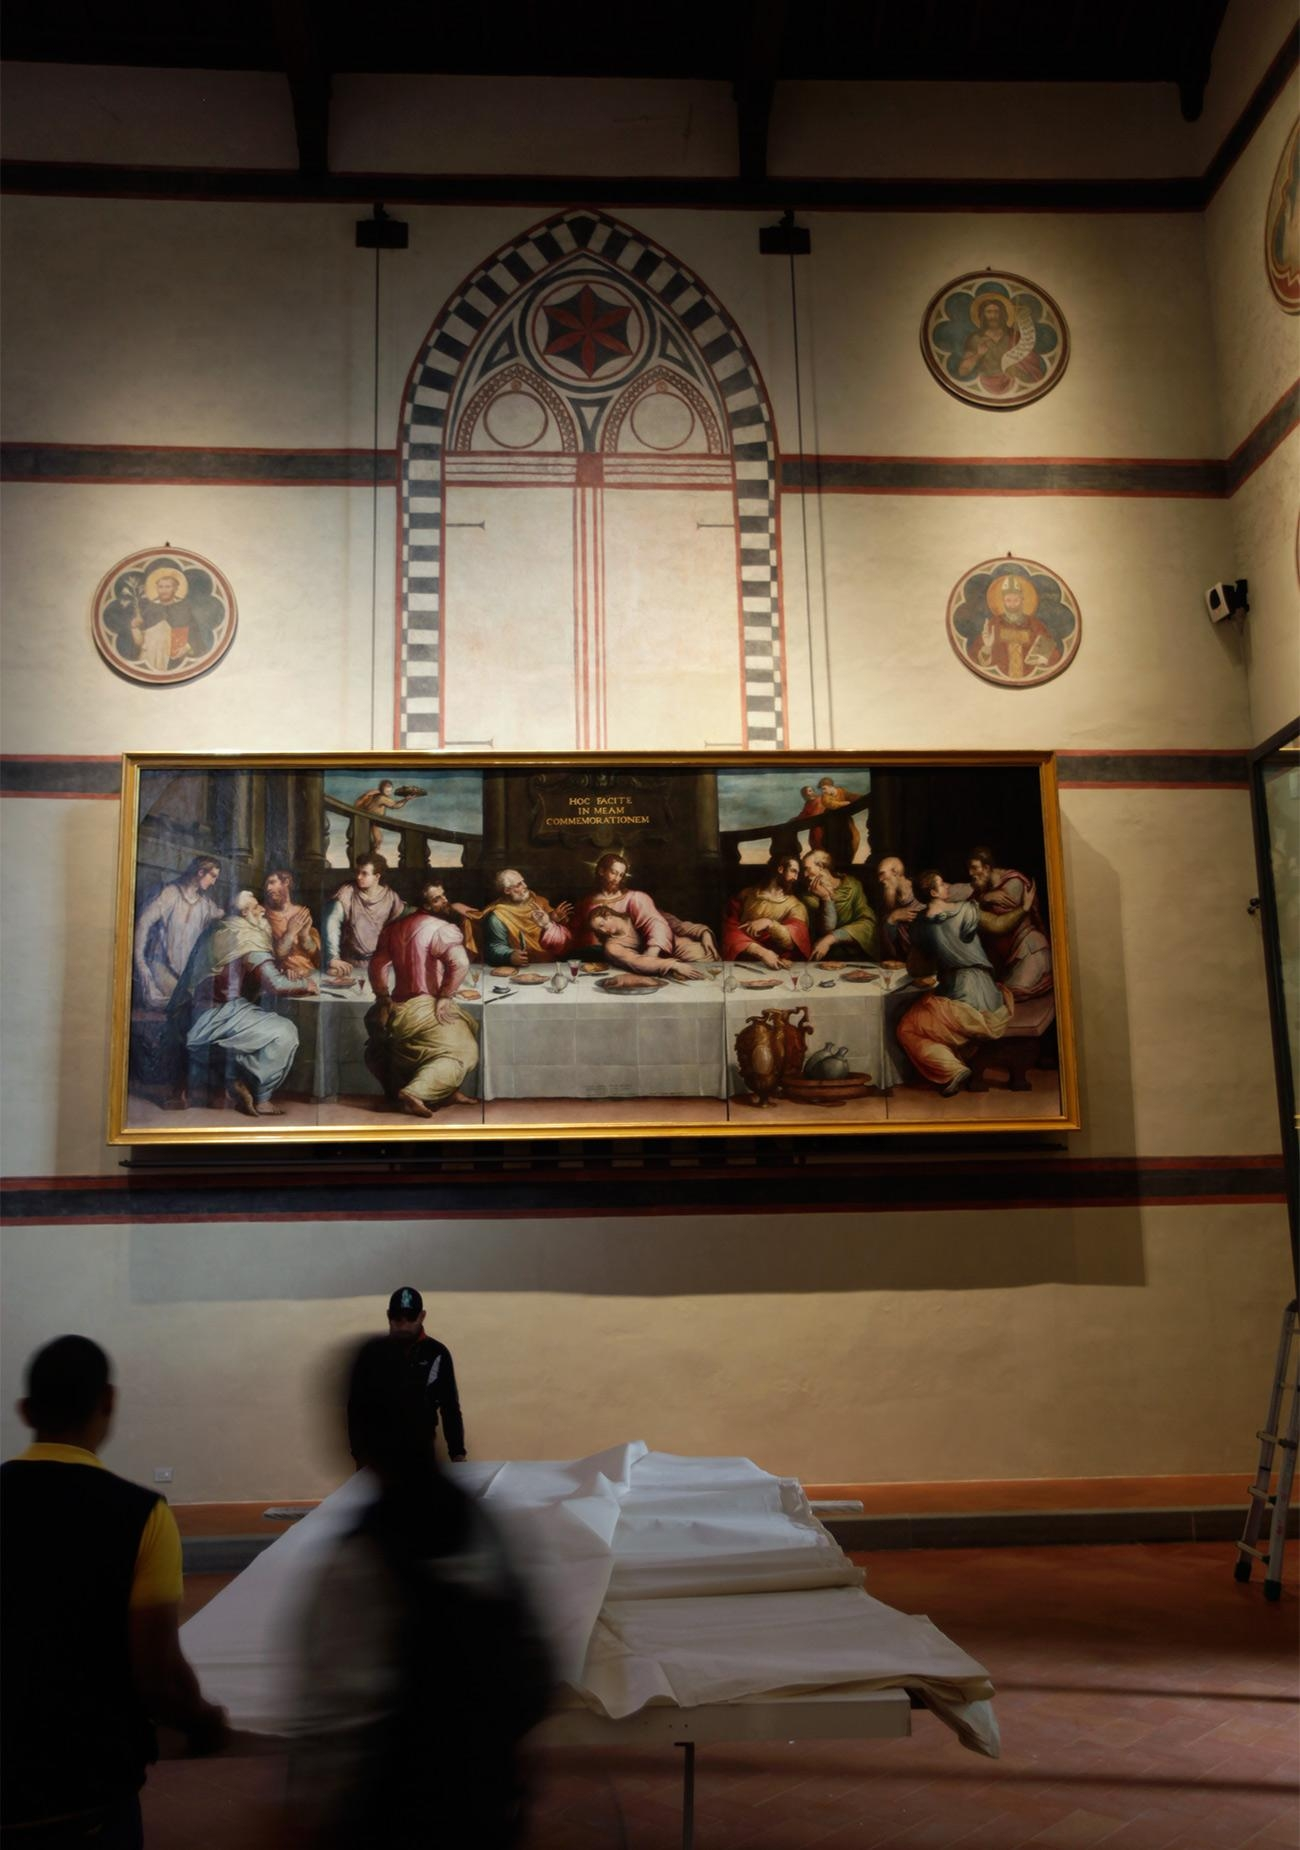 50 Years After The Flood, A Renaissance Painting Restored | The for The Last Supper Wall Art